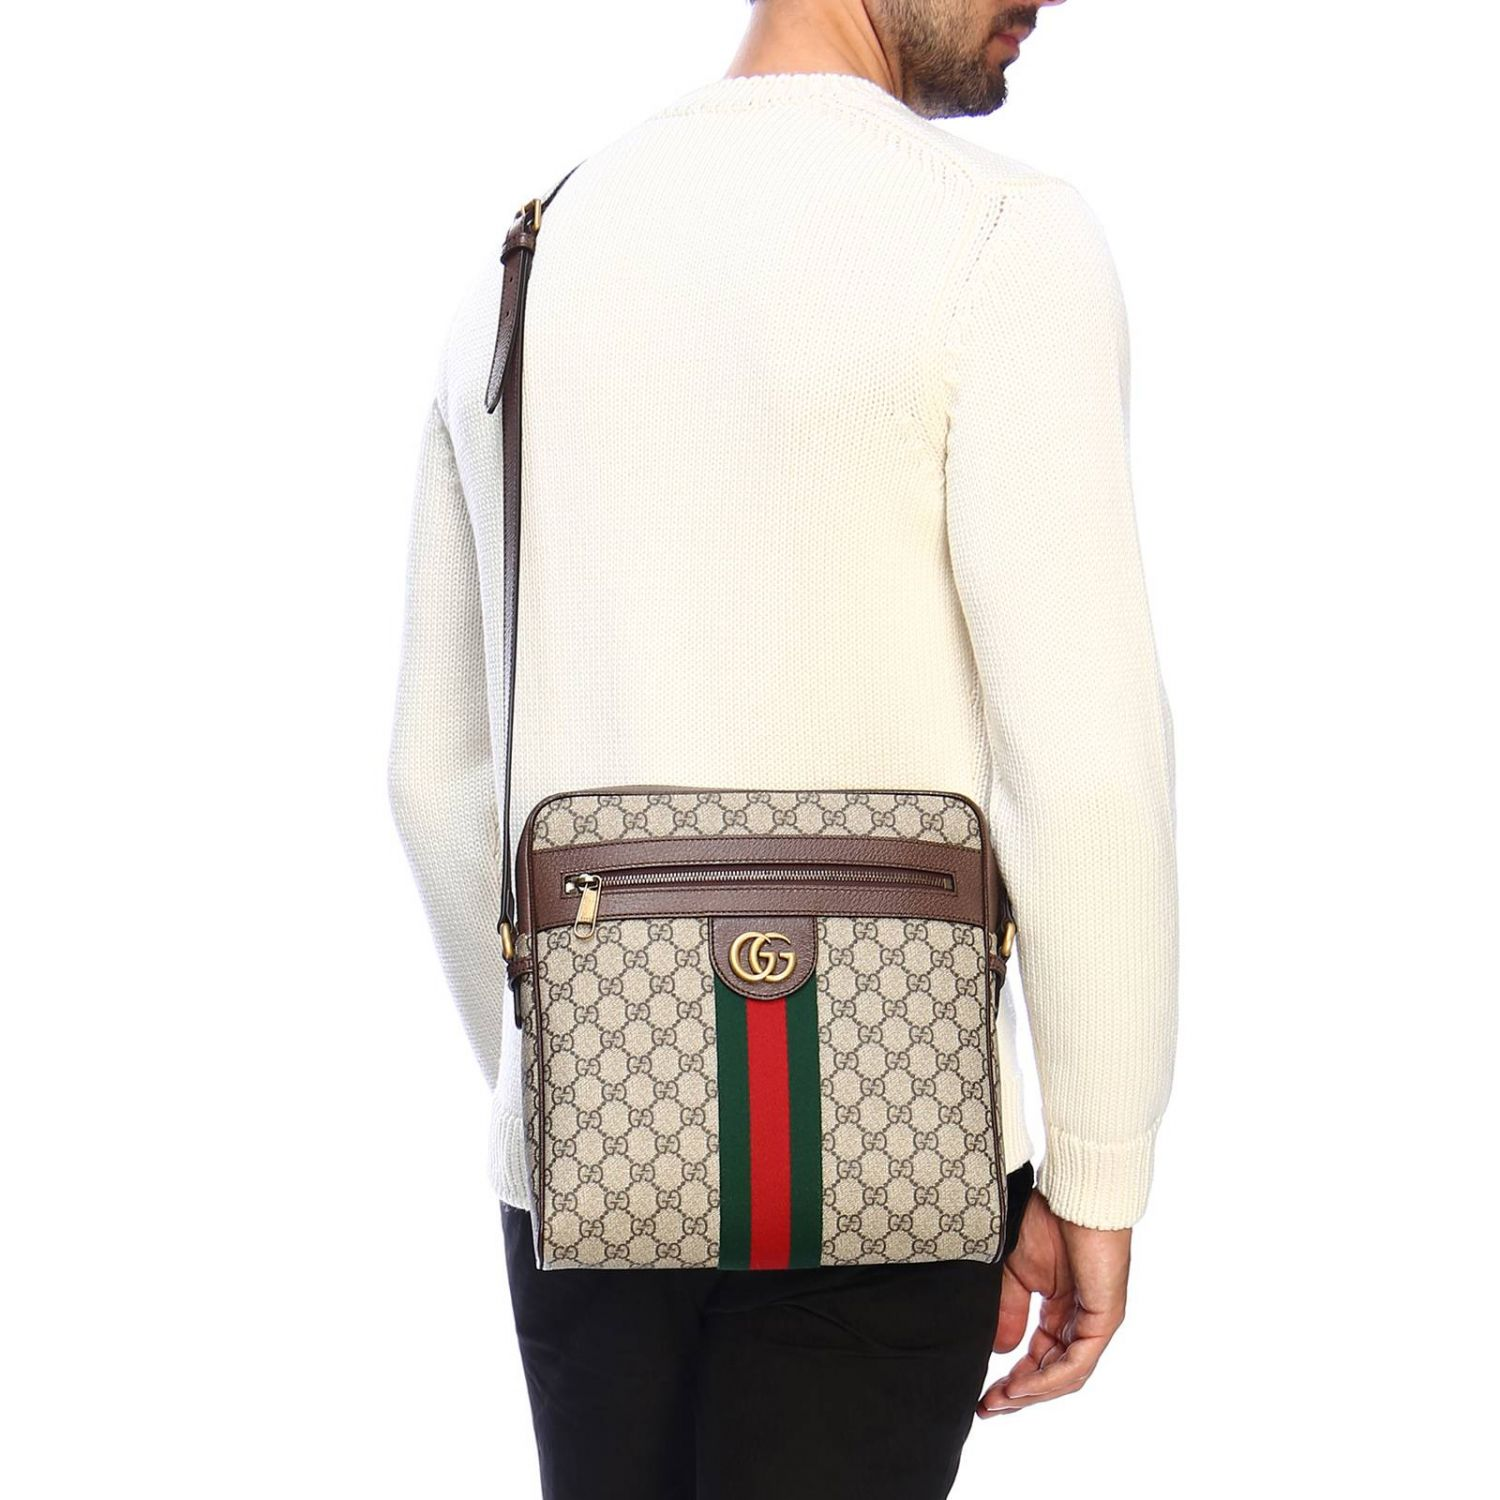 Ophidia shoulder bag in GG Supreme Gucci leather with Web band beige 2